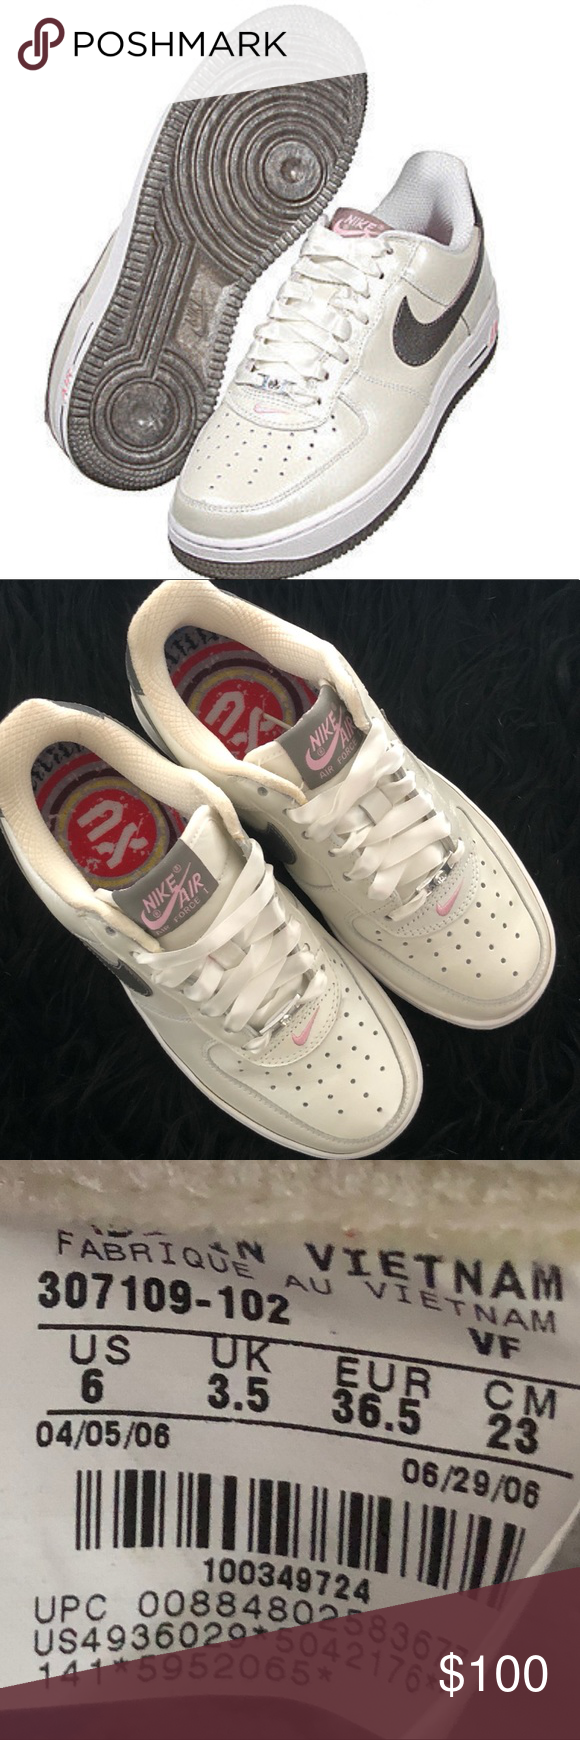 Womens Nike Air Force 1 White Pewter Pink Sz 6 Nike Women